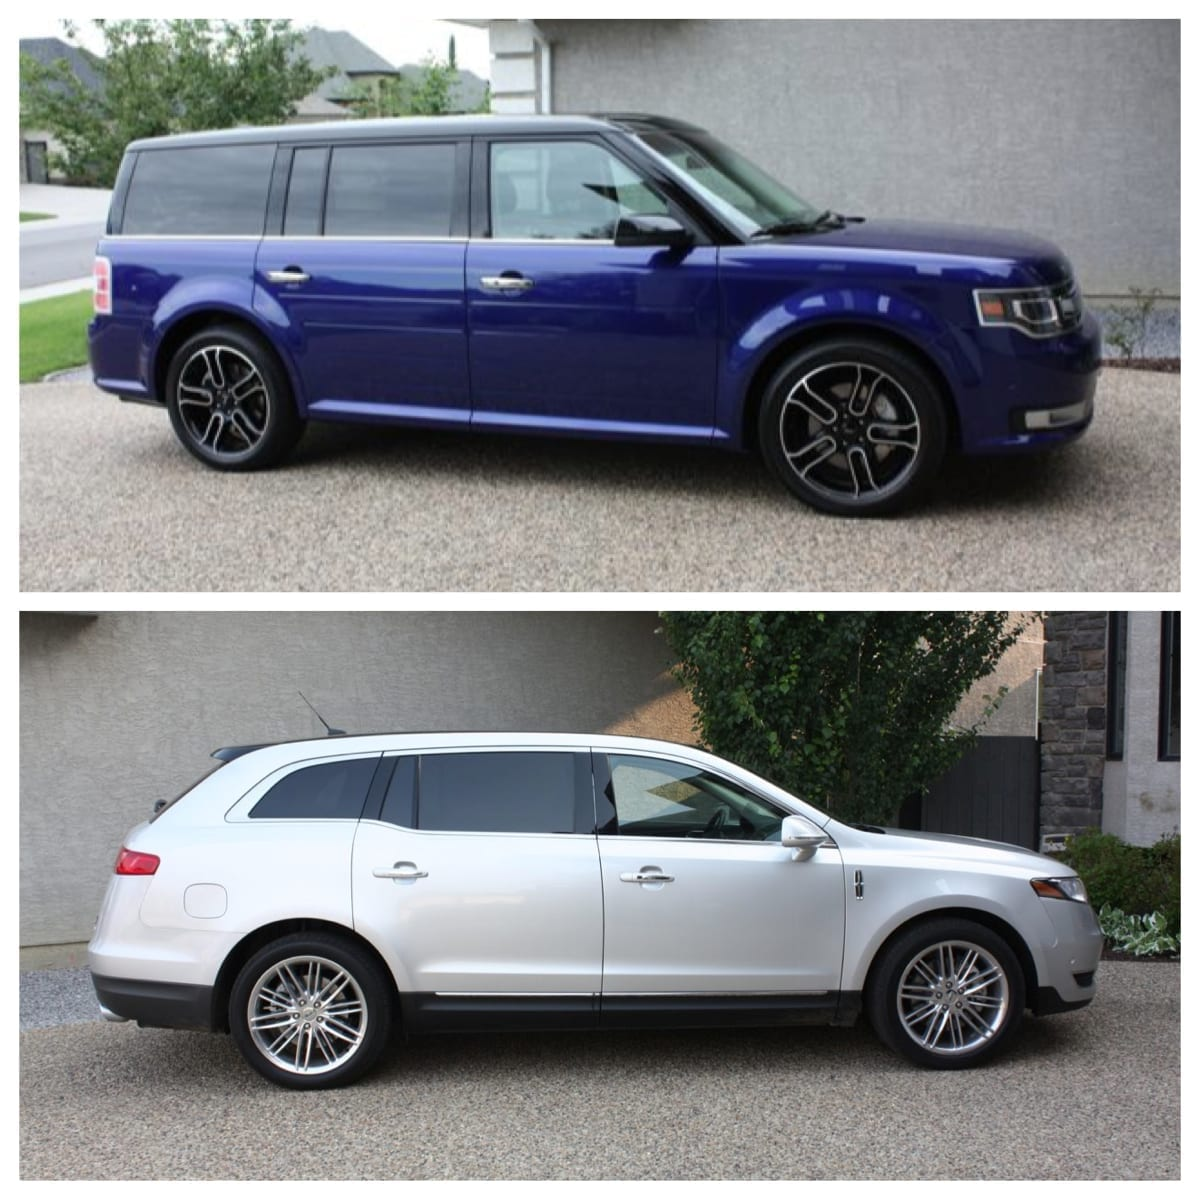 comparo 2013 ford flex 2013 lincoln mkt review wildsau. Black Bedroom Furniture Sets. Home Design Ideas